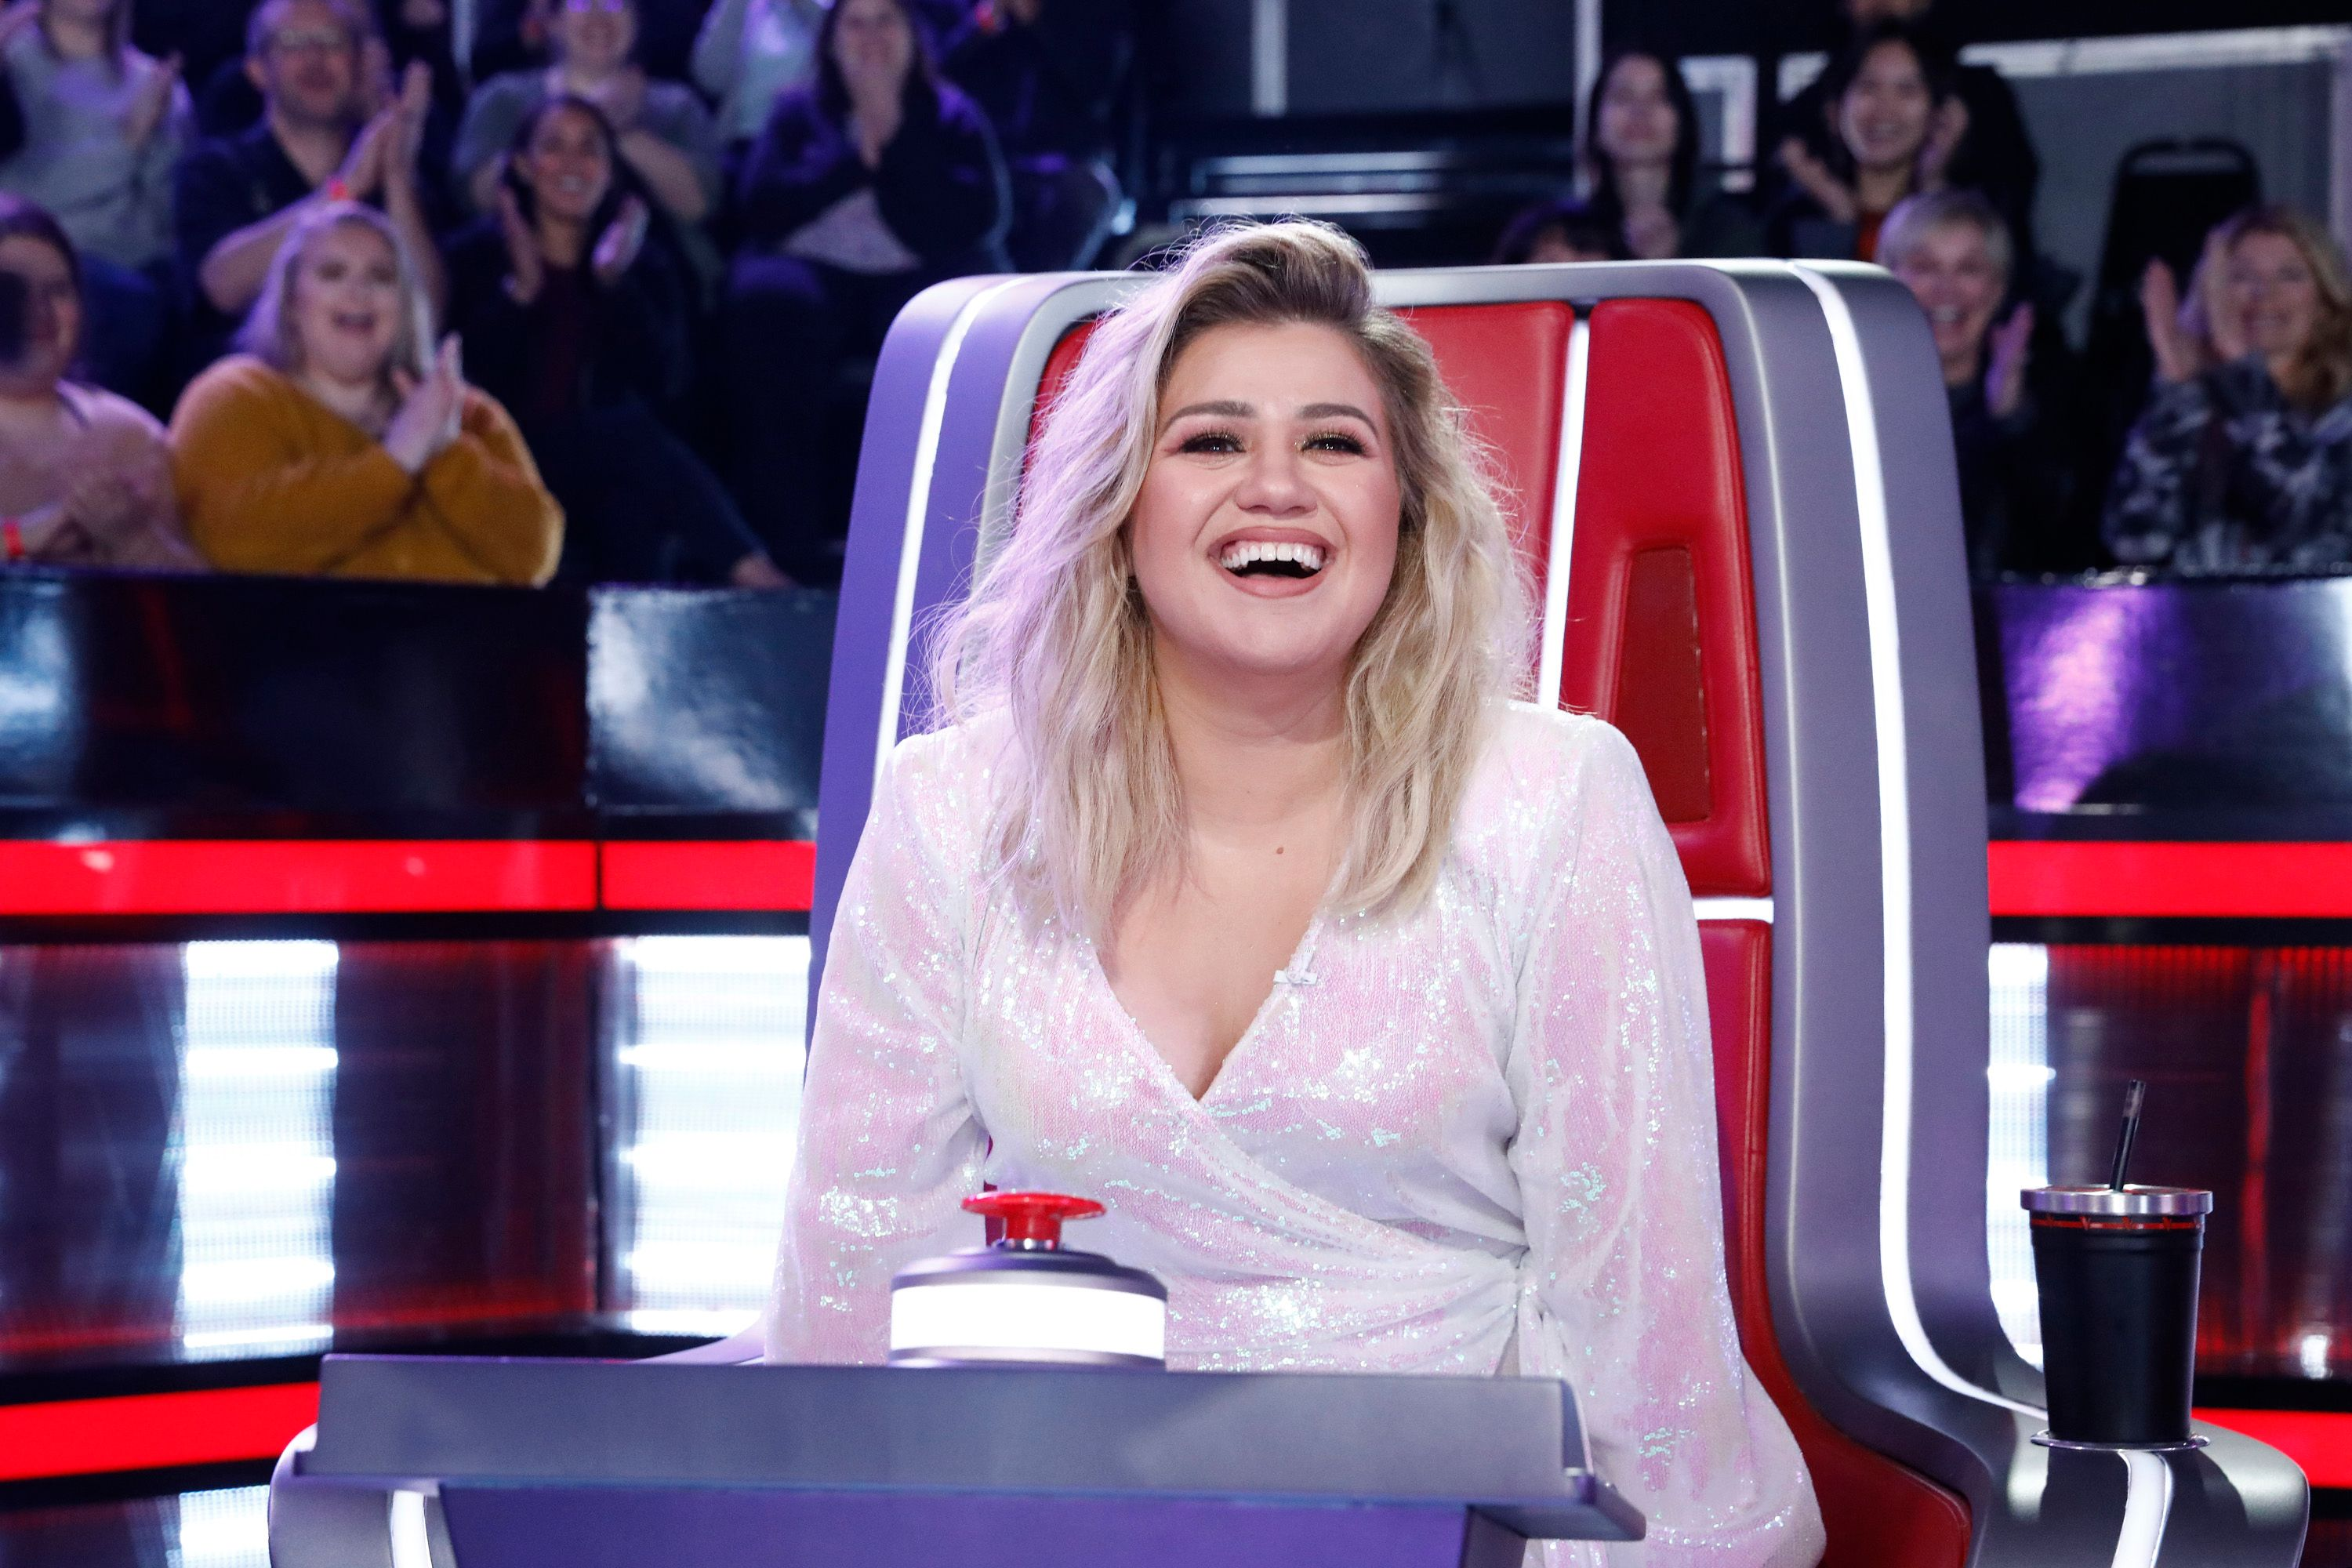 Kelly Clarkson at the Blind Auditions of The Voice / Getty Images